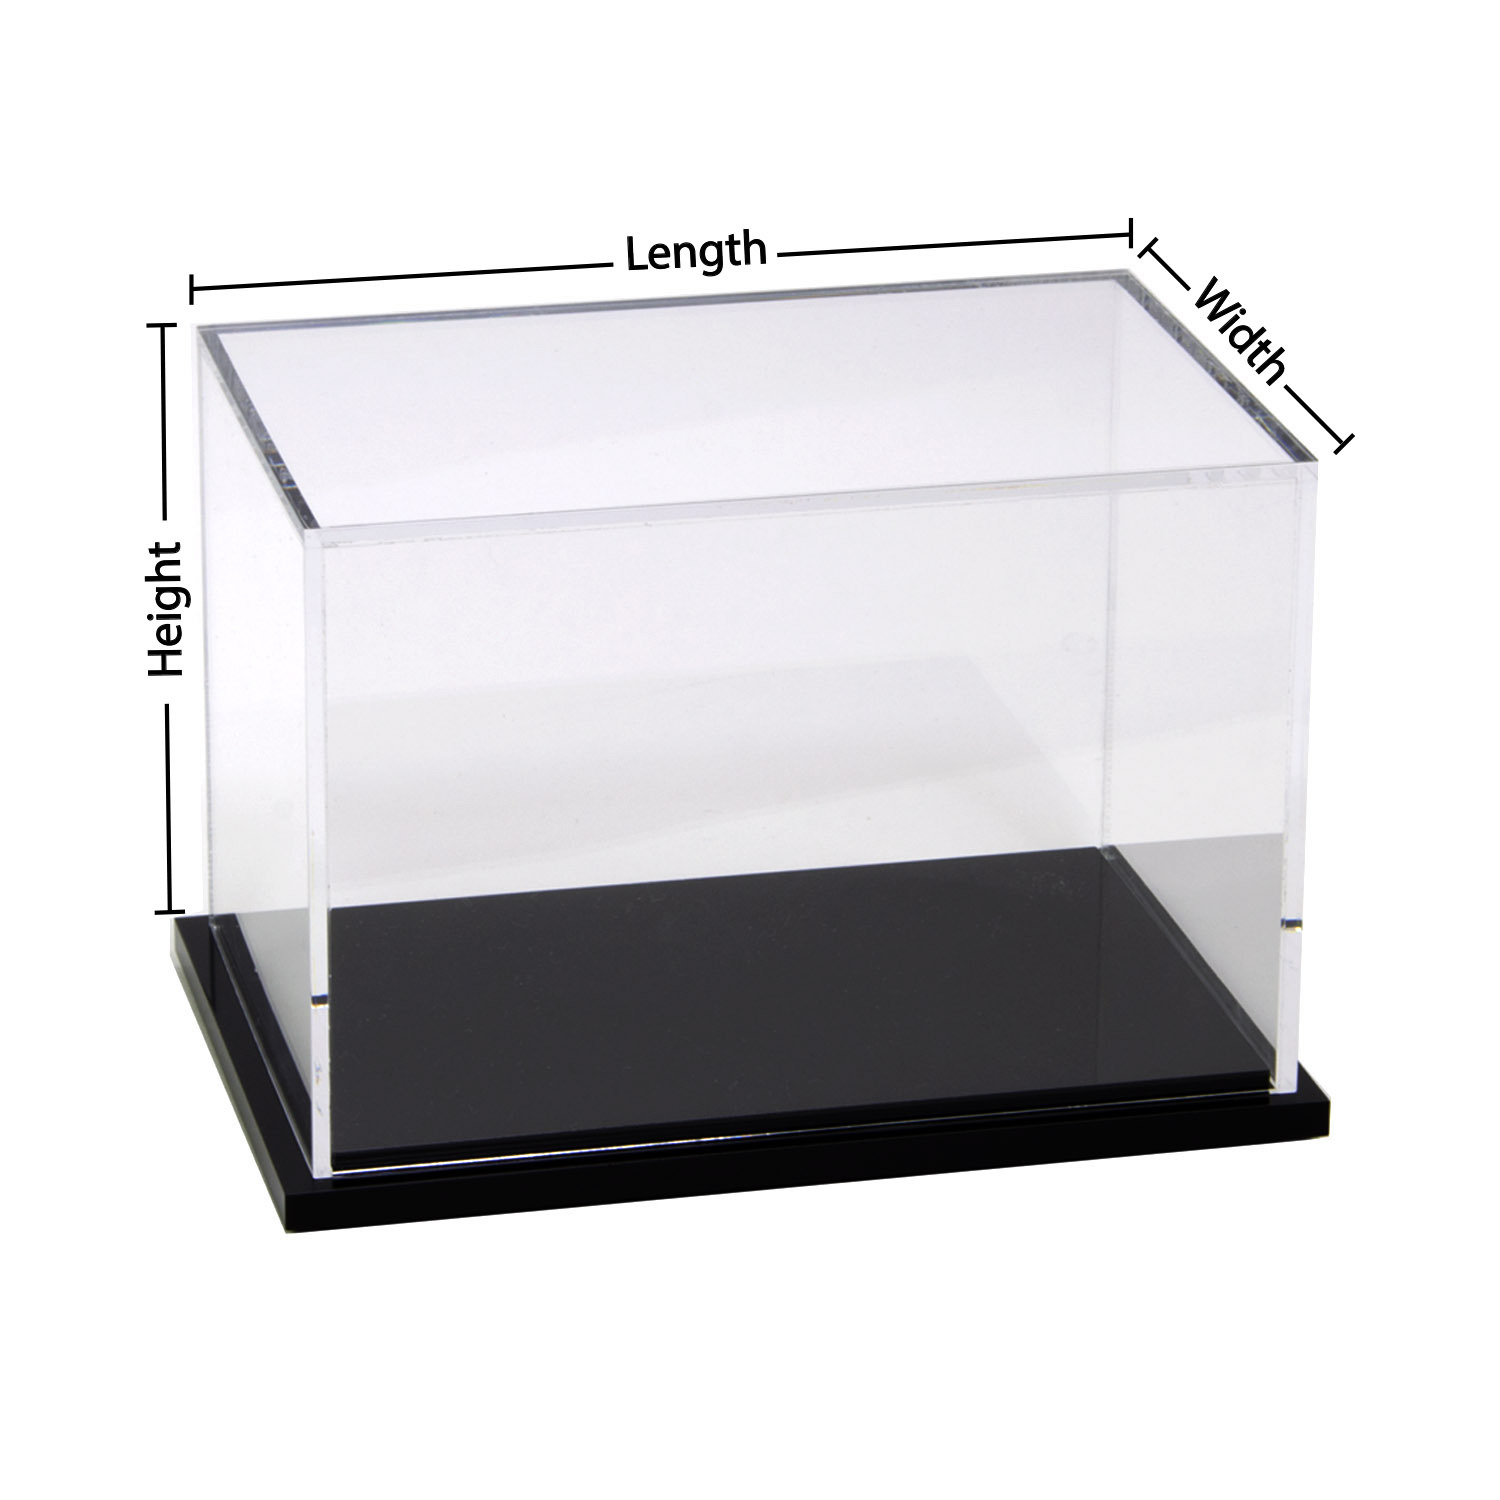 5 Sided Clear Acrylic Box - Custom Size - Buy Acrylic ...